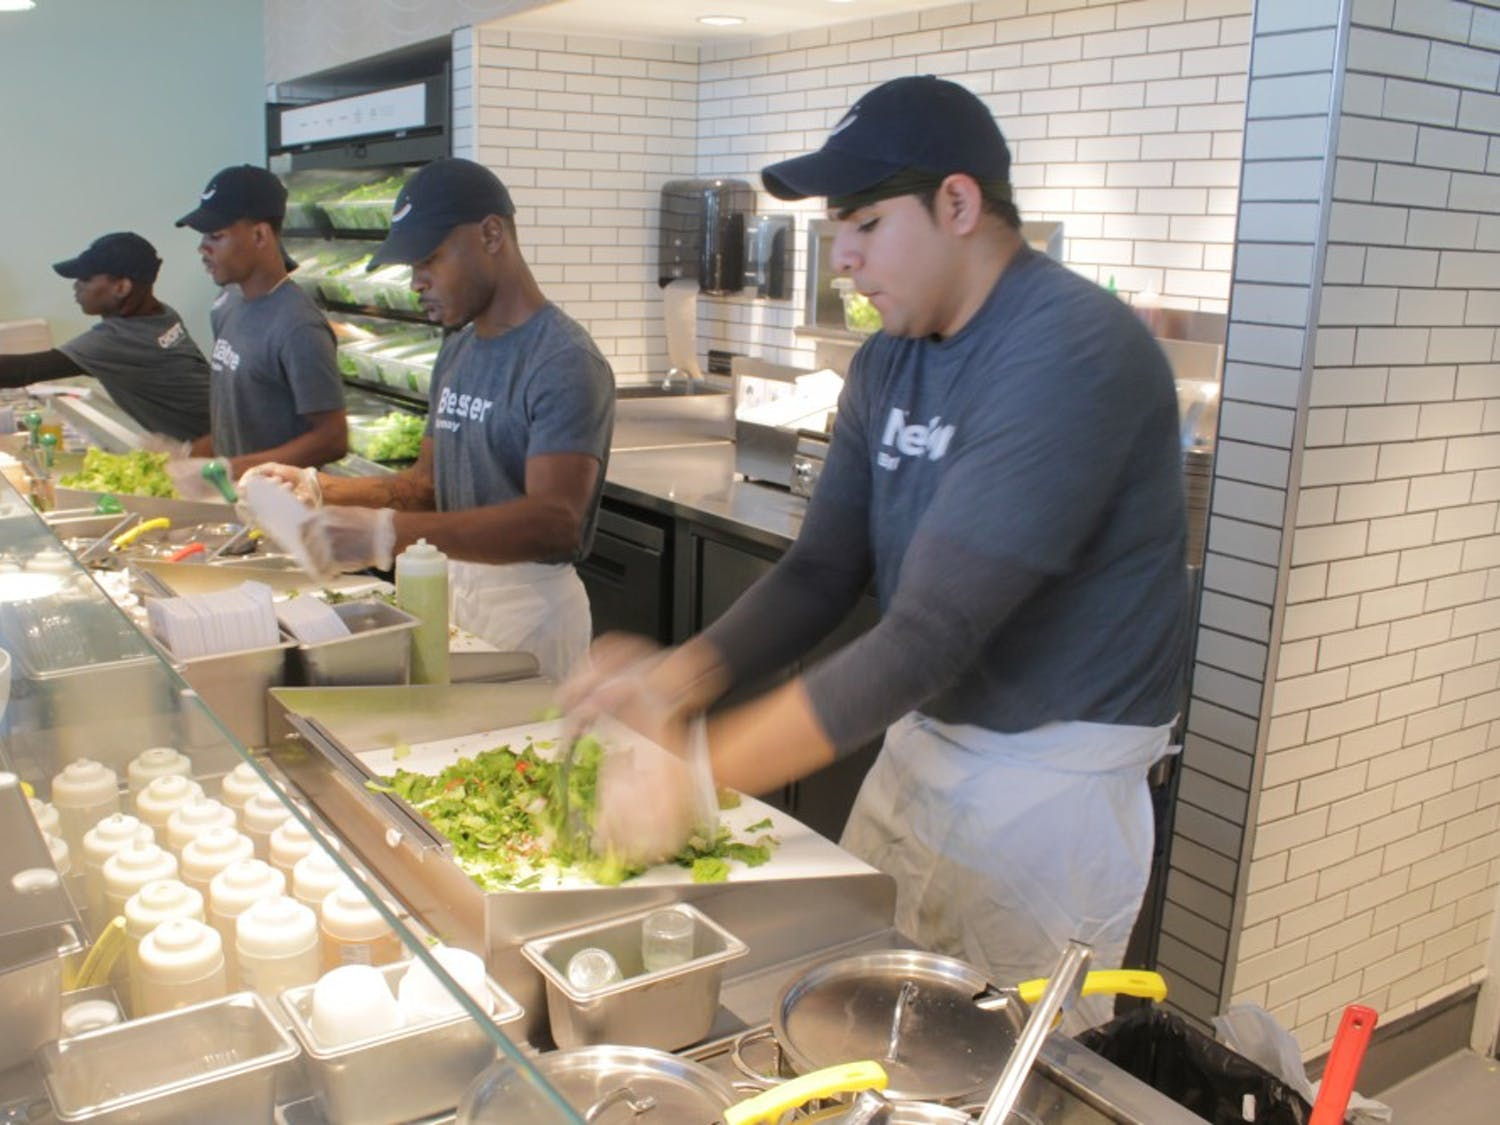 Workers prepare salad at Chopt, a new restaurant on Fordham Boulevard.